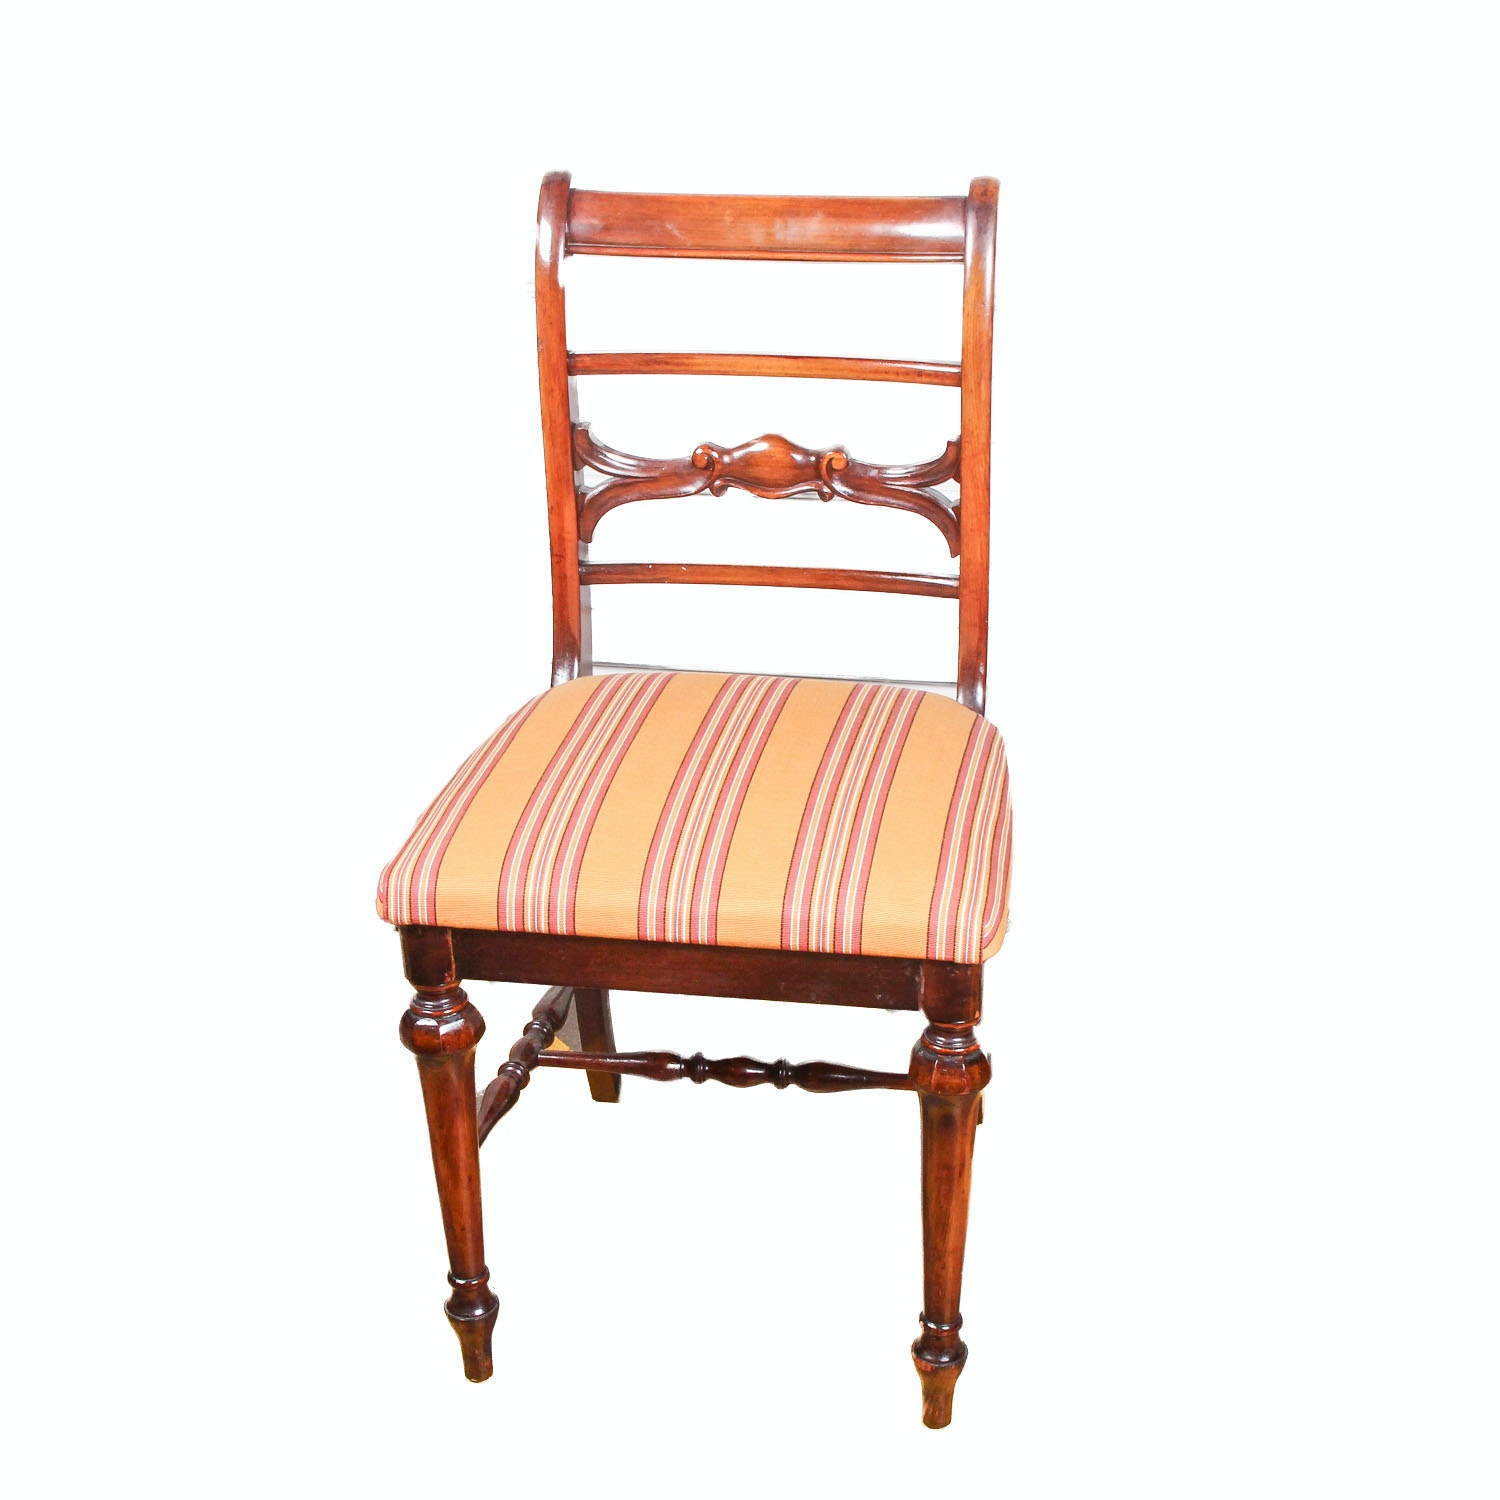 Vintage Wood Chair with Striped Seat Cushion